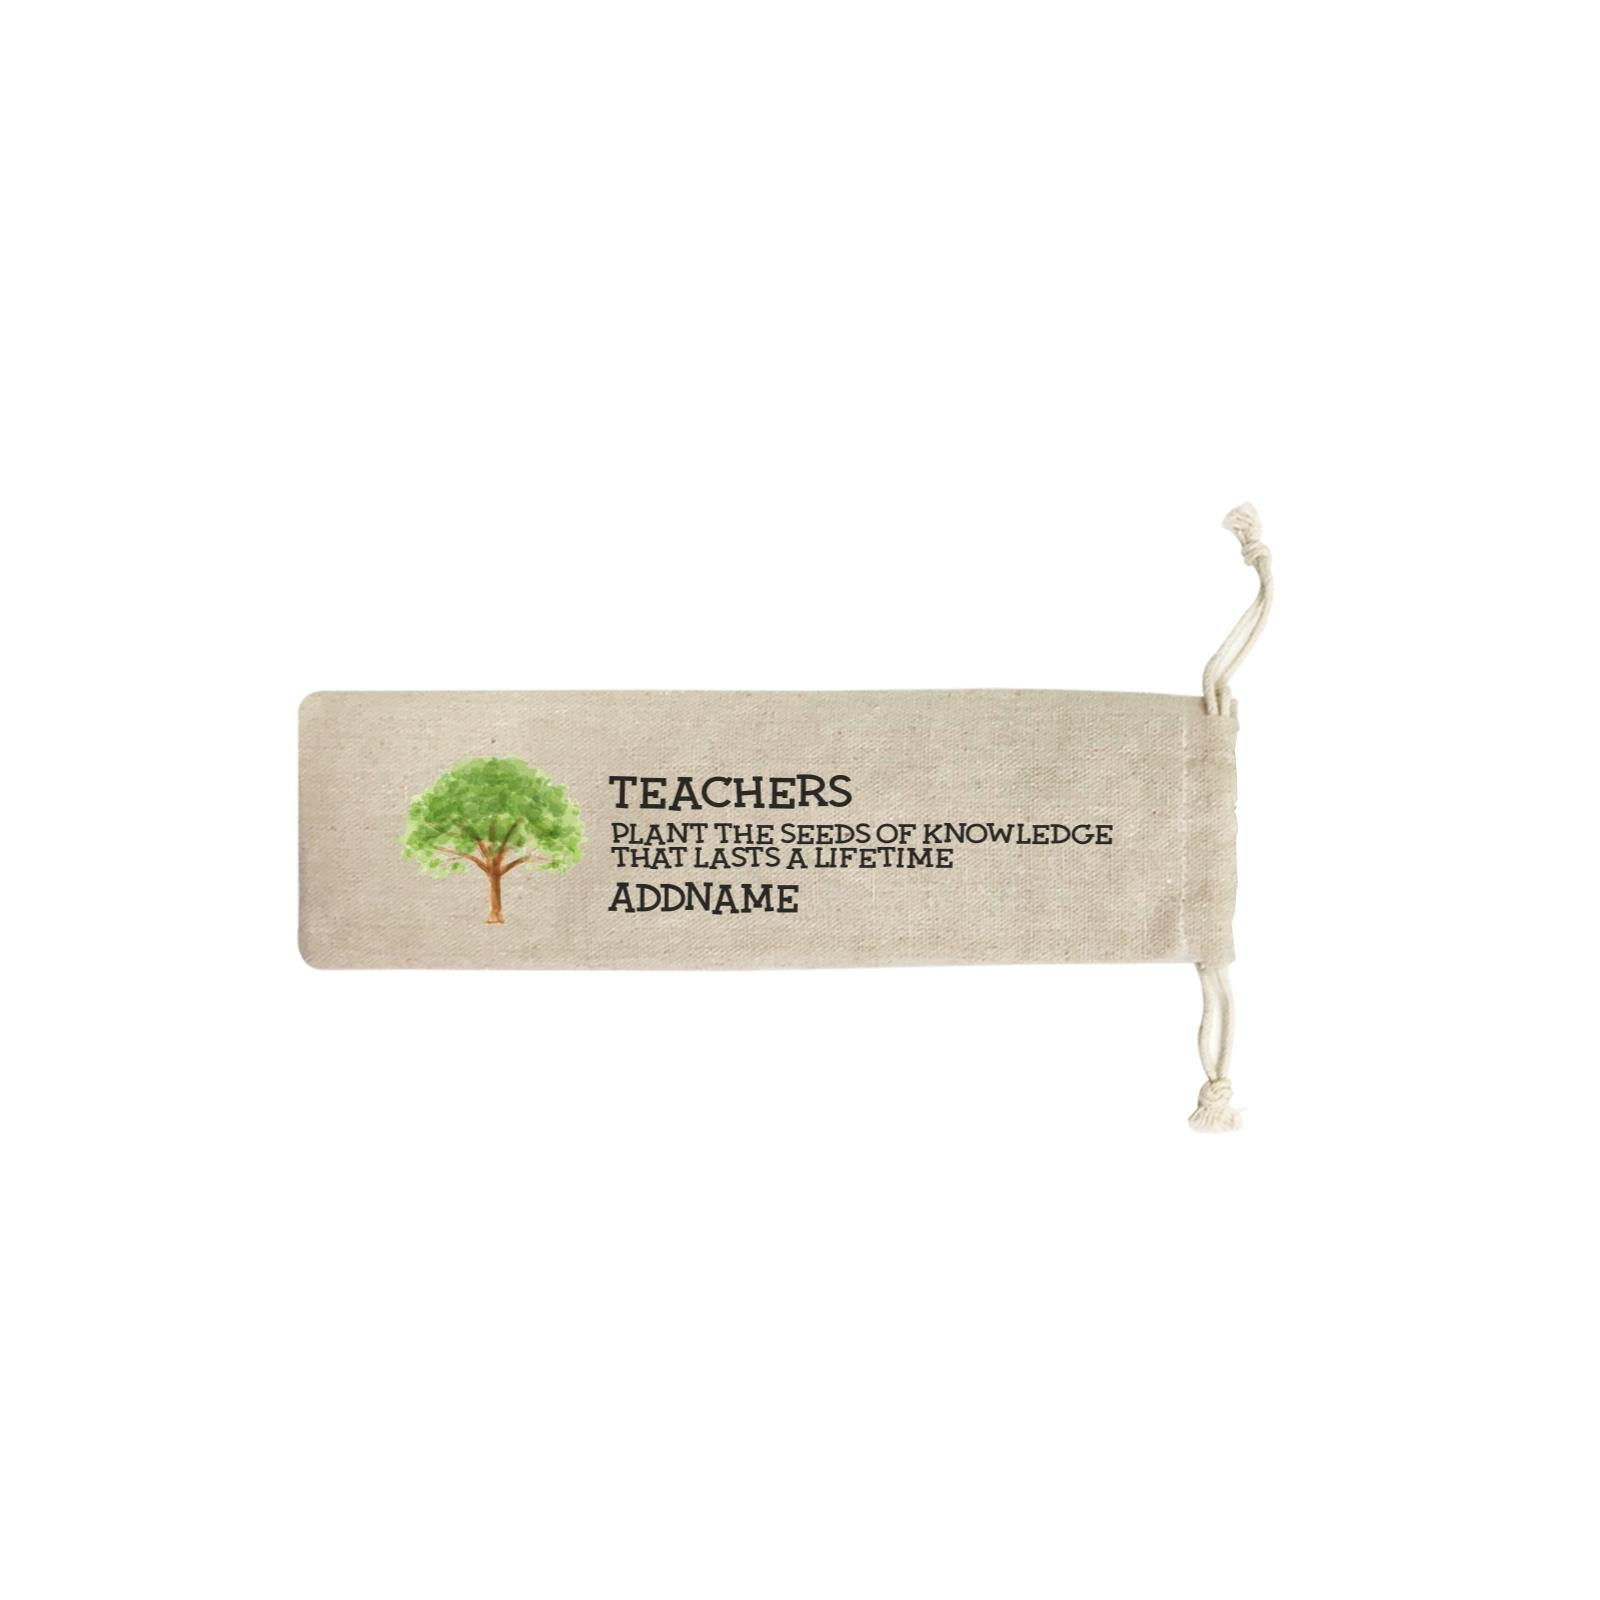 Teacher Quotes 2 Teachers Plant The Seeds Of Knowledge That Lasts A Lifetime Addname SB Straw Pouch (No Straws included)